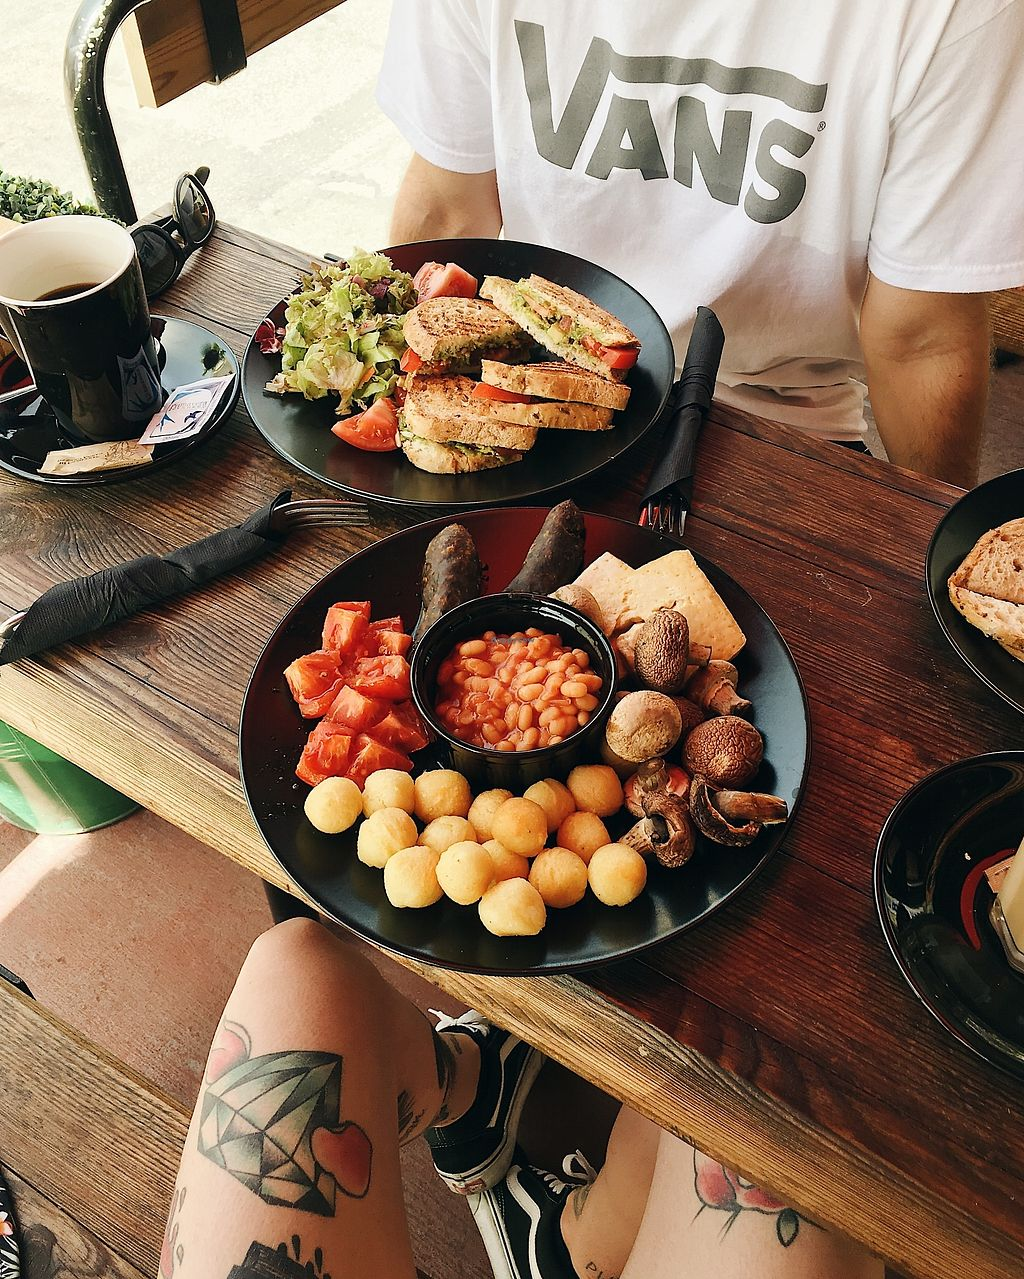 """Photo of Pash the Healthy Options   by <a href=""""/members/profile/Fisty022"""">Fisty022</a> <br/>Vegan breakfast <br/> October 23, 2017  - <a href='/contact/abuse/image/90997/318033'>Report</a>"""